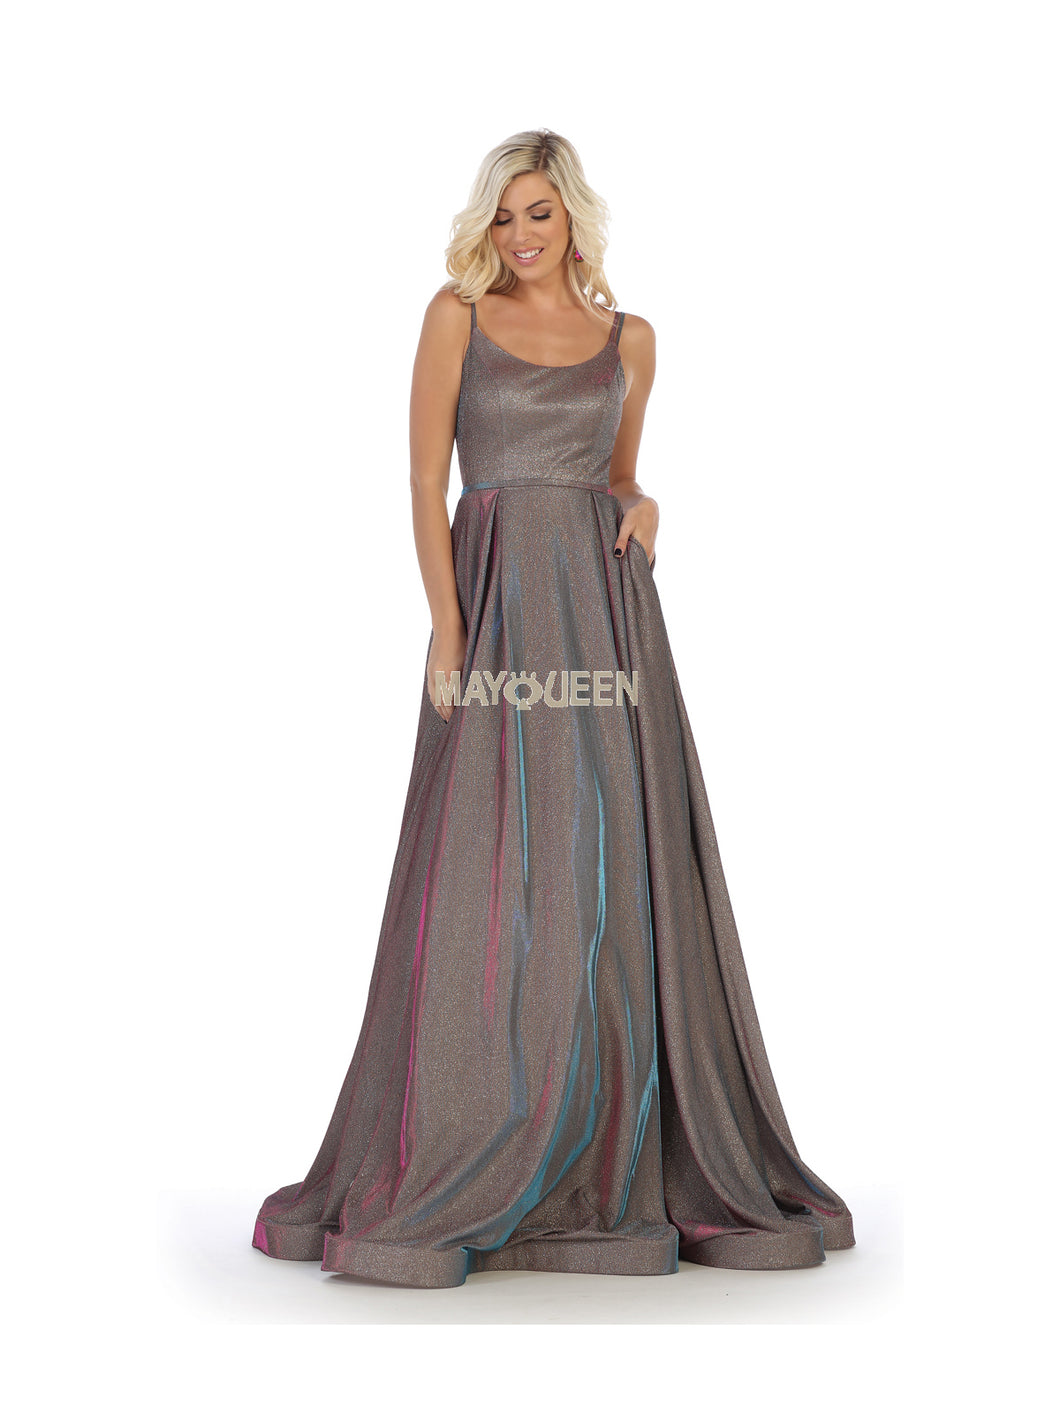 Mayqueen Size Chart E MQ 7726 - A-Line Spaghetti Strap Gown with Banded Waist - Diggz Prom